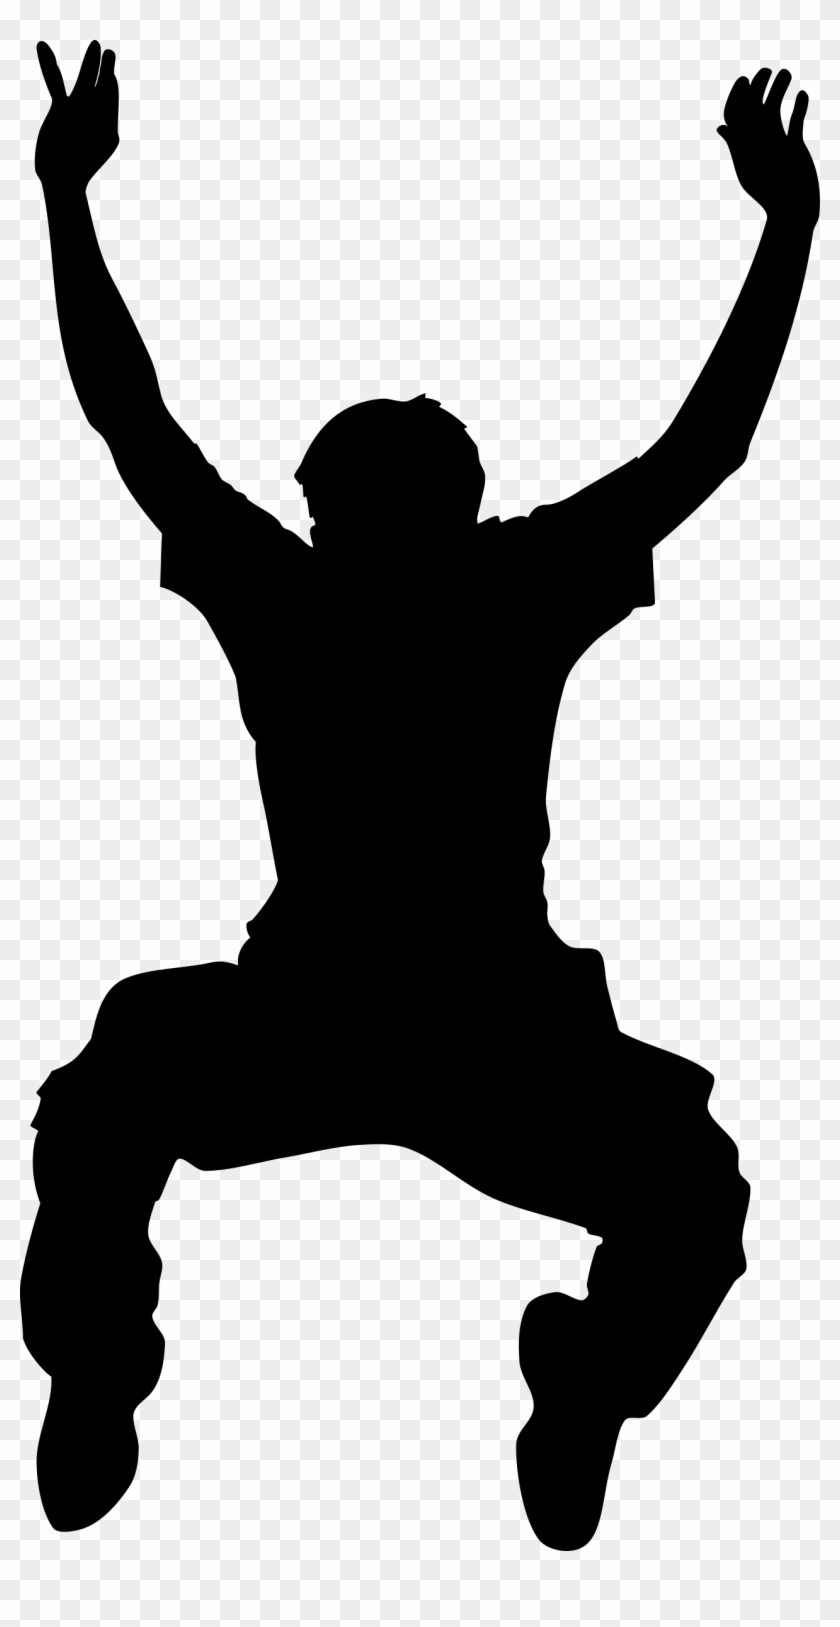 Pin By Robert Werner On Dance Photos Pinterest School - Boy Jumping Silhouette Png #27568